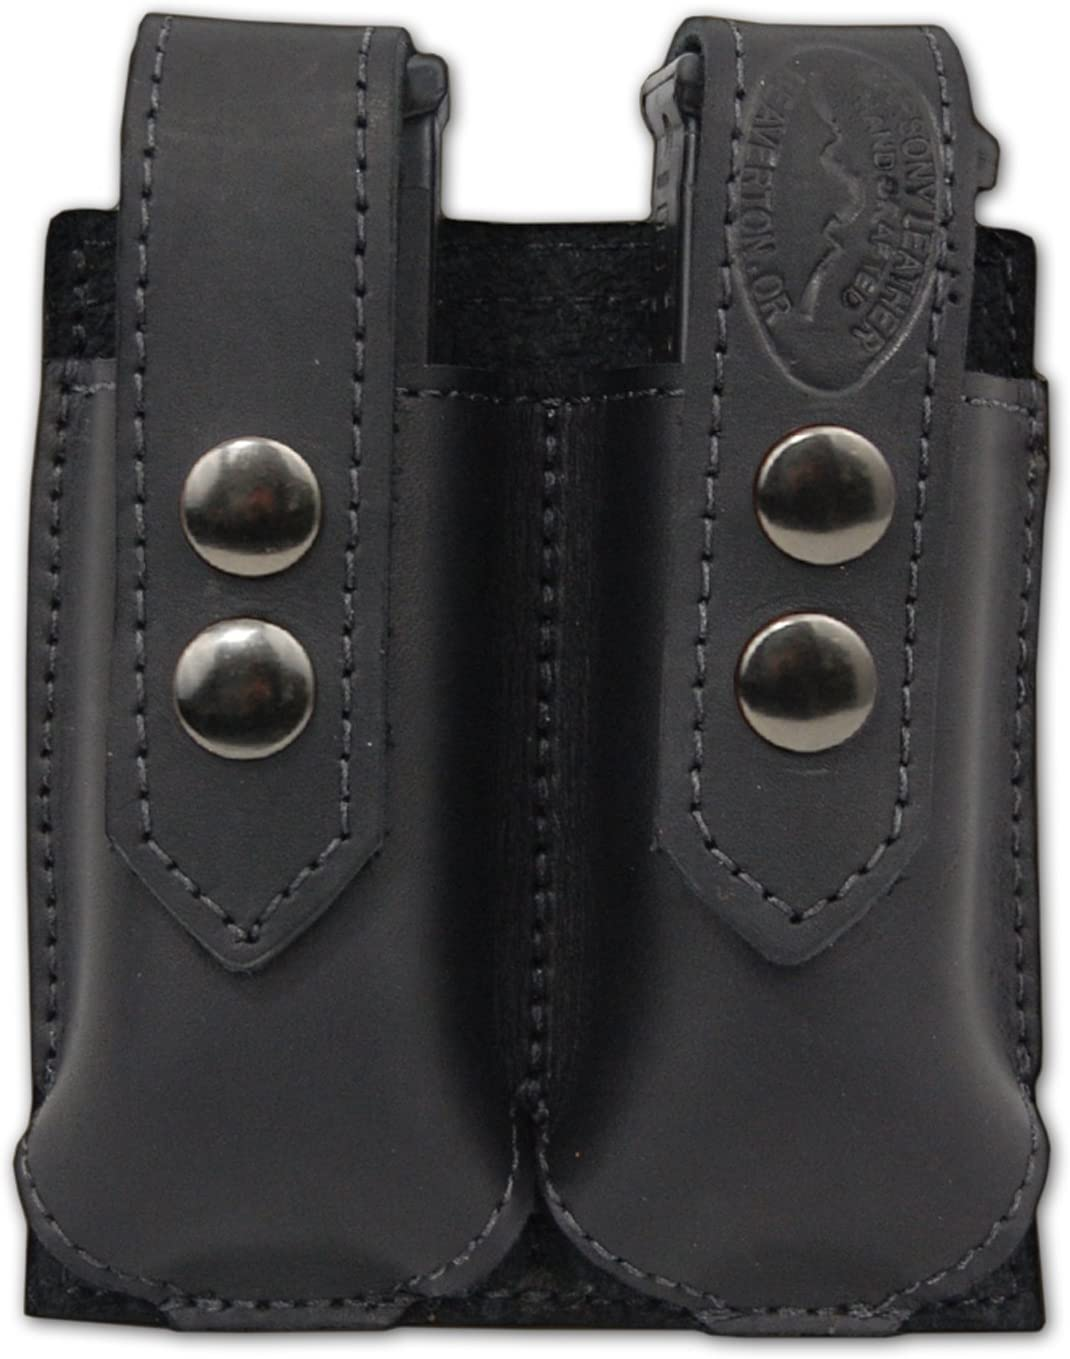 Barsony New Black Leather Double Magazine Pouch for Compact 9mm 40 45 Pistols 71eqn8NZE3L